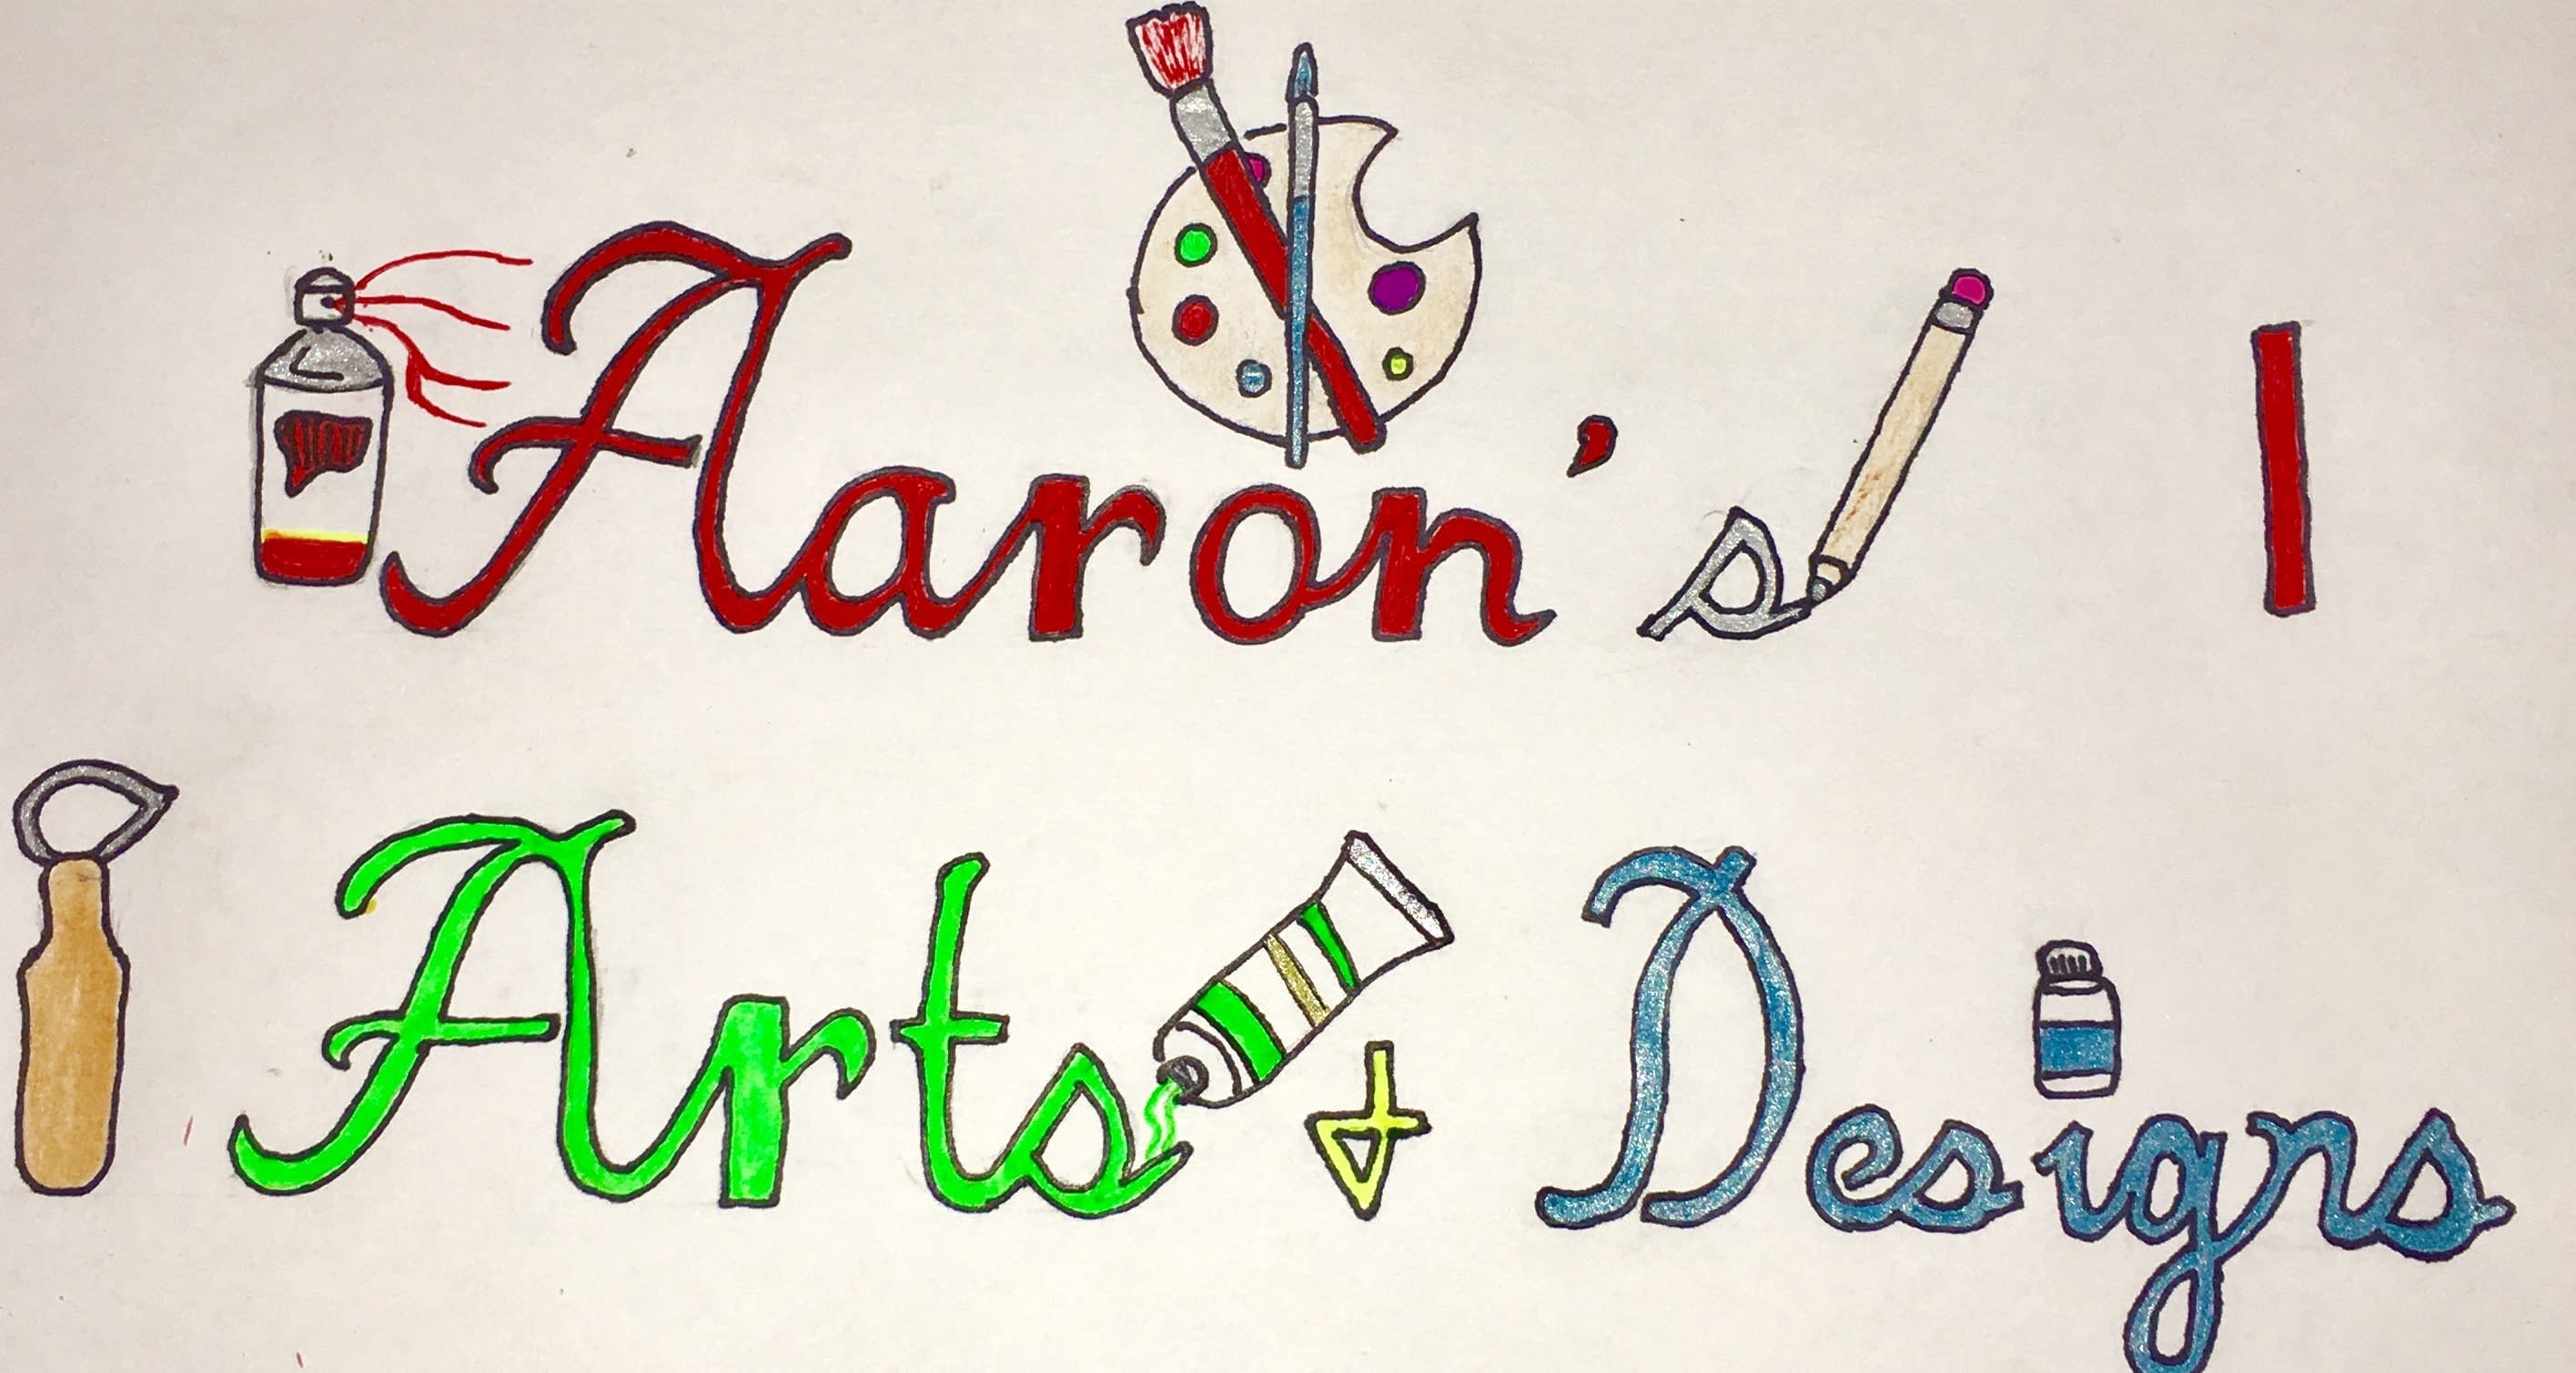 Aaron's Arts and Designs